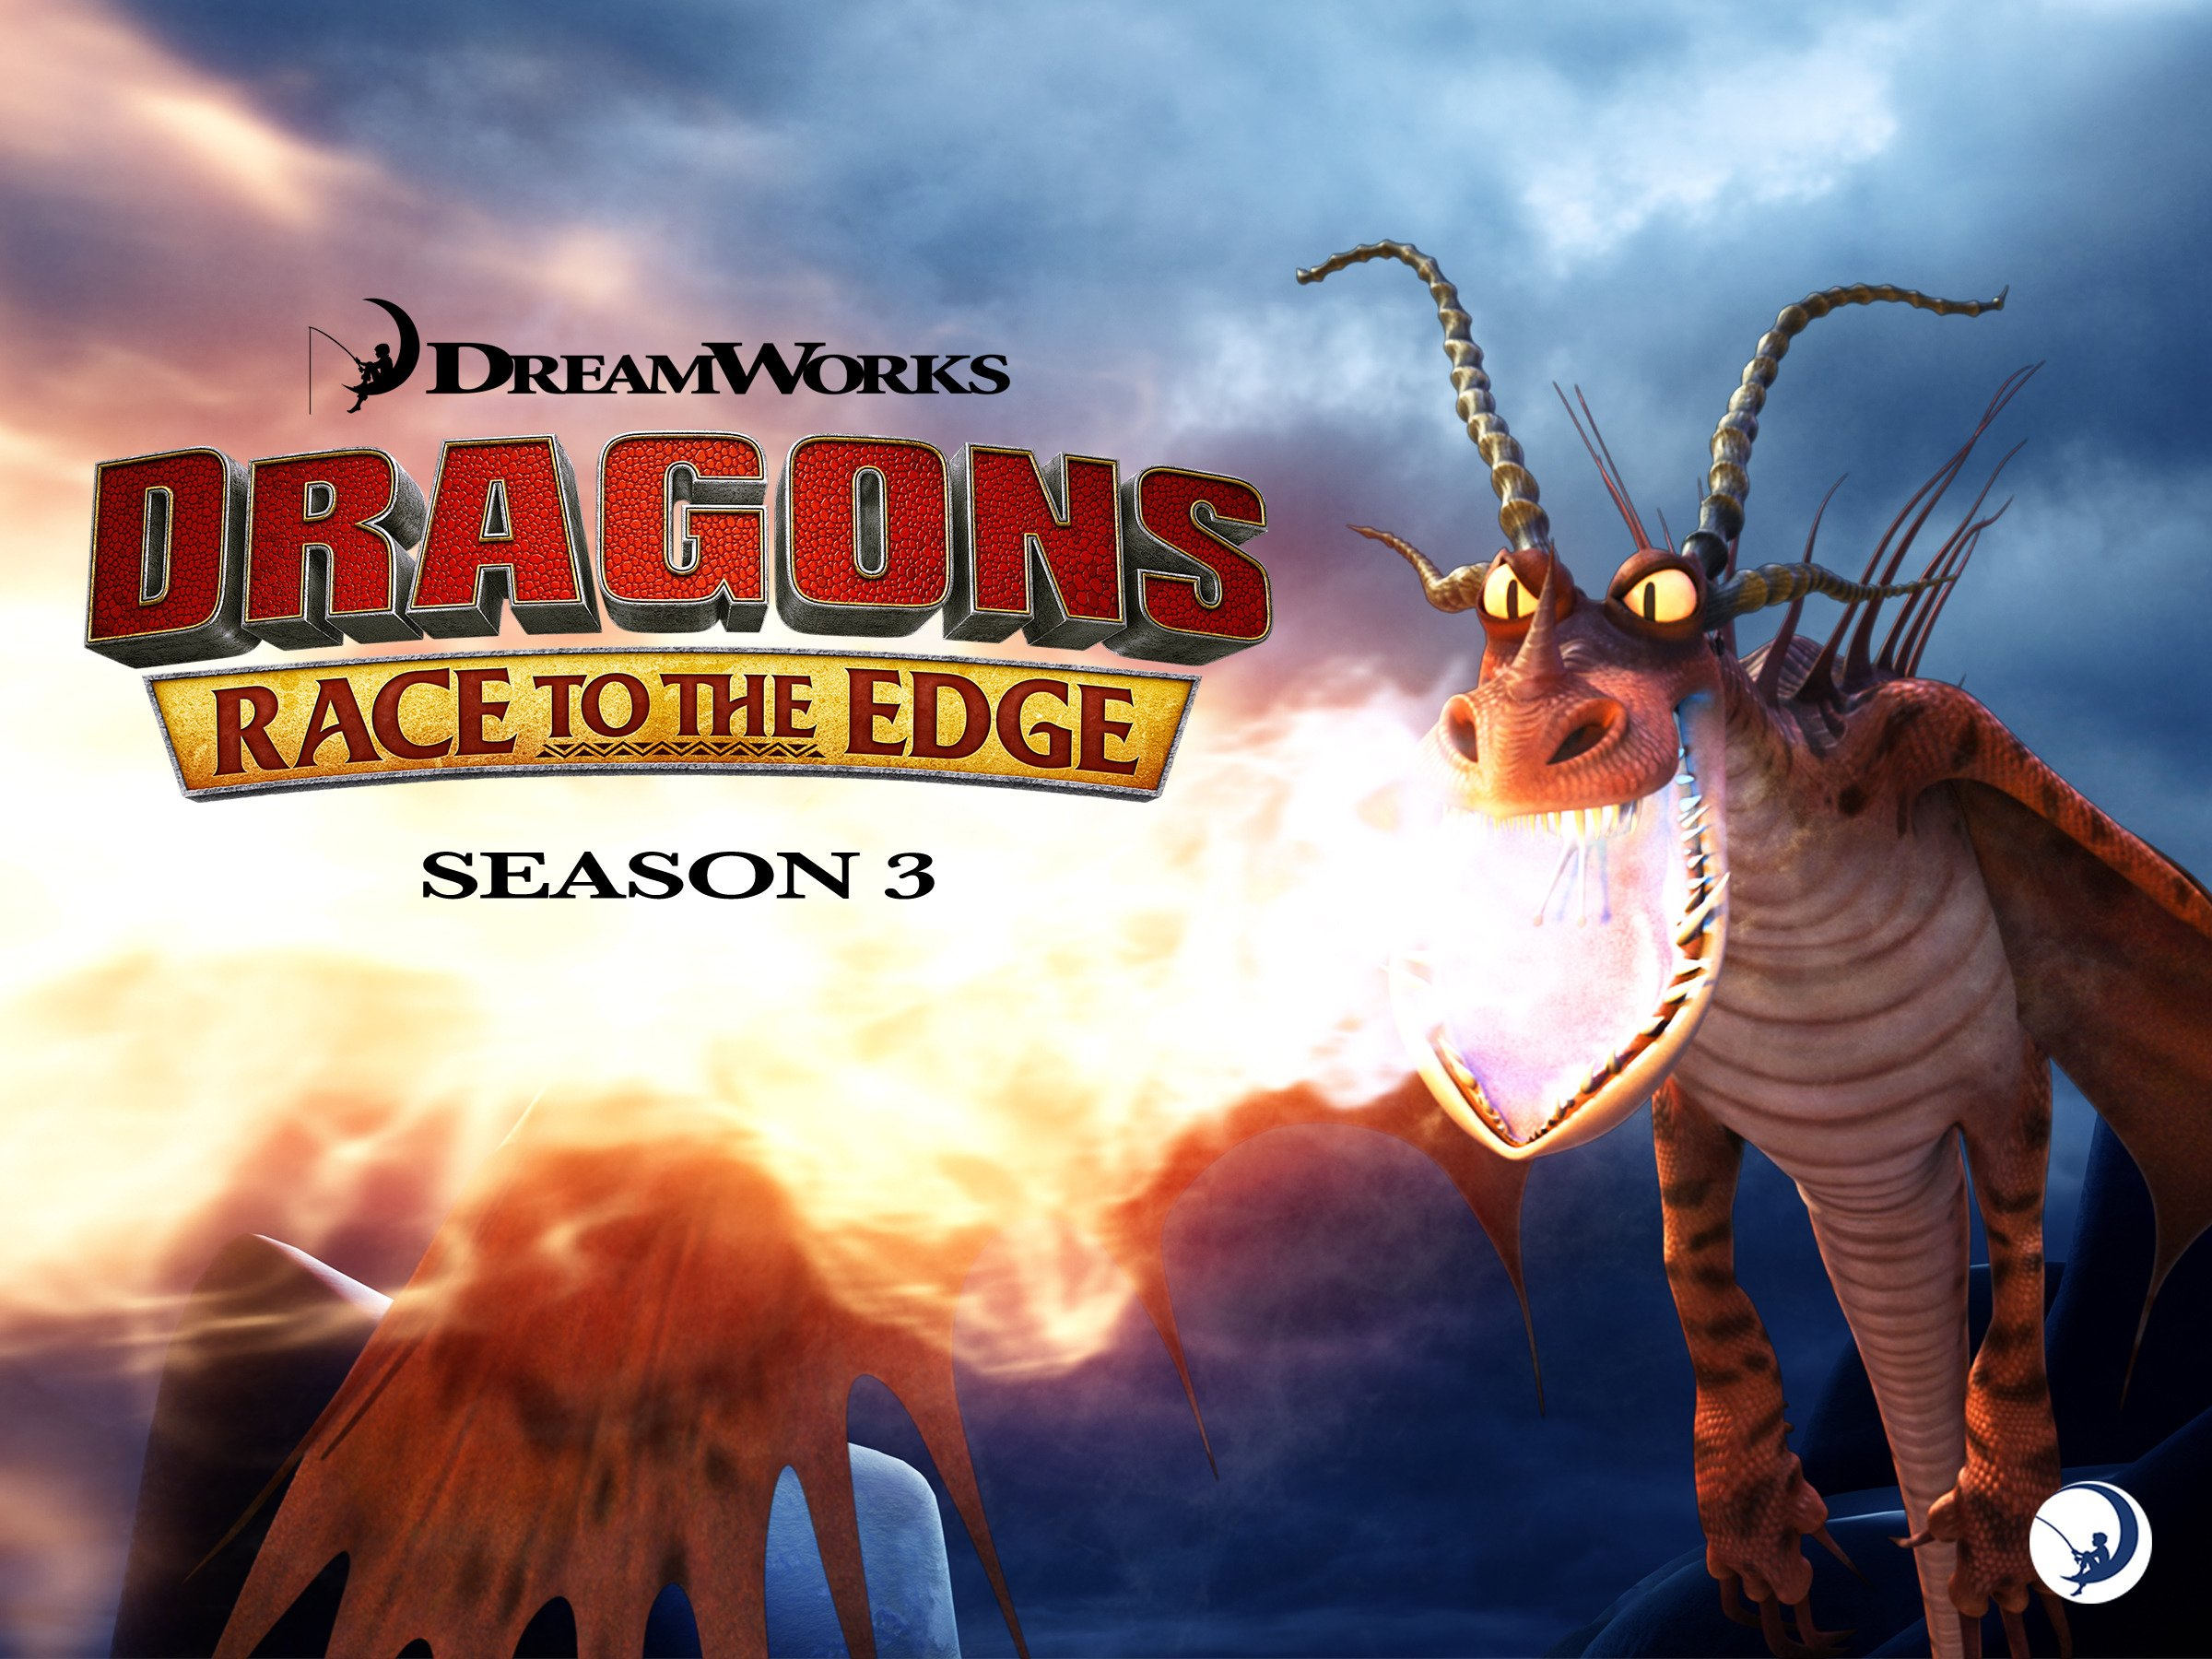 dreamworks dragons season 6 episode 13